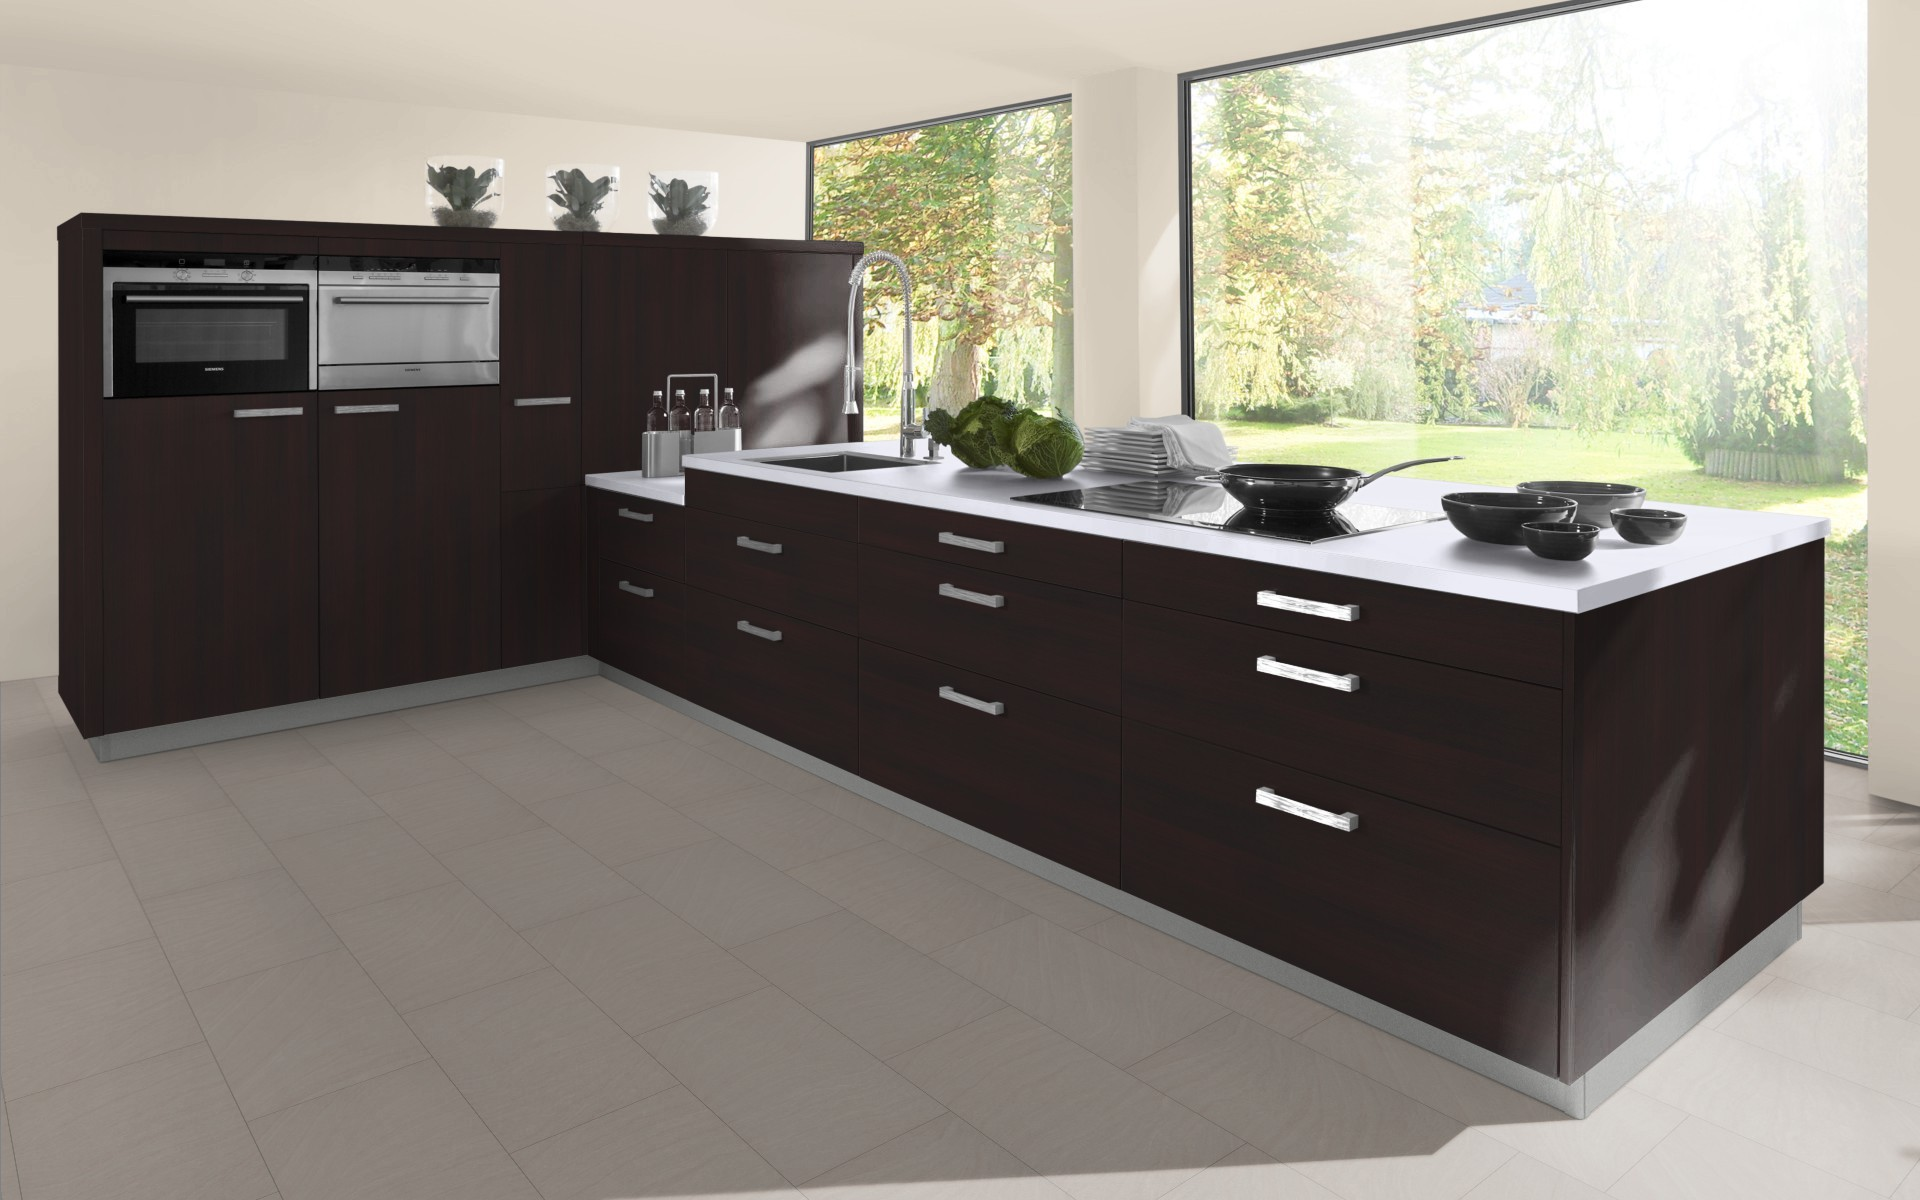 Classic Woodgrain Kitchen Door in Black Brown Ferrara Oak